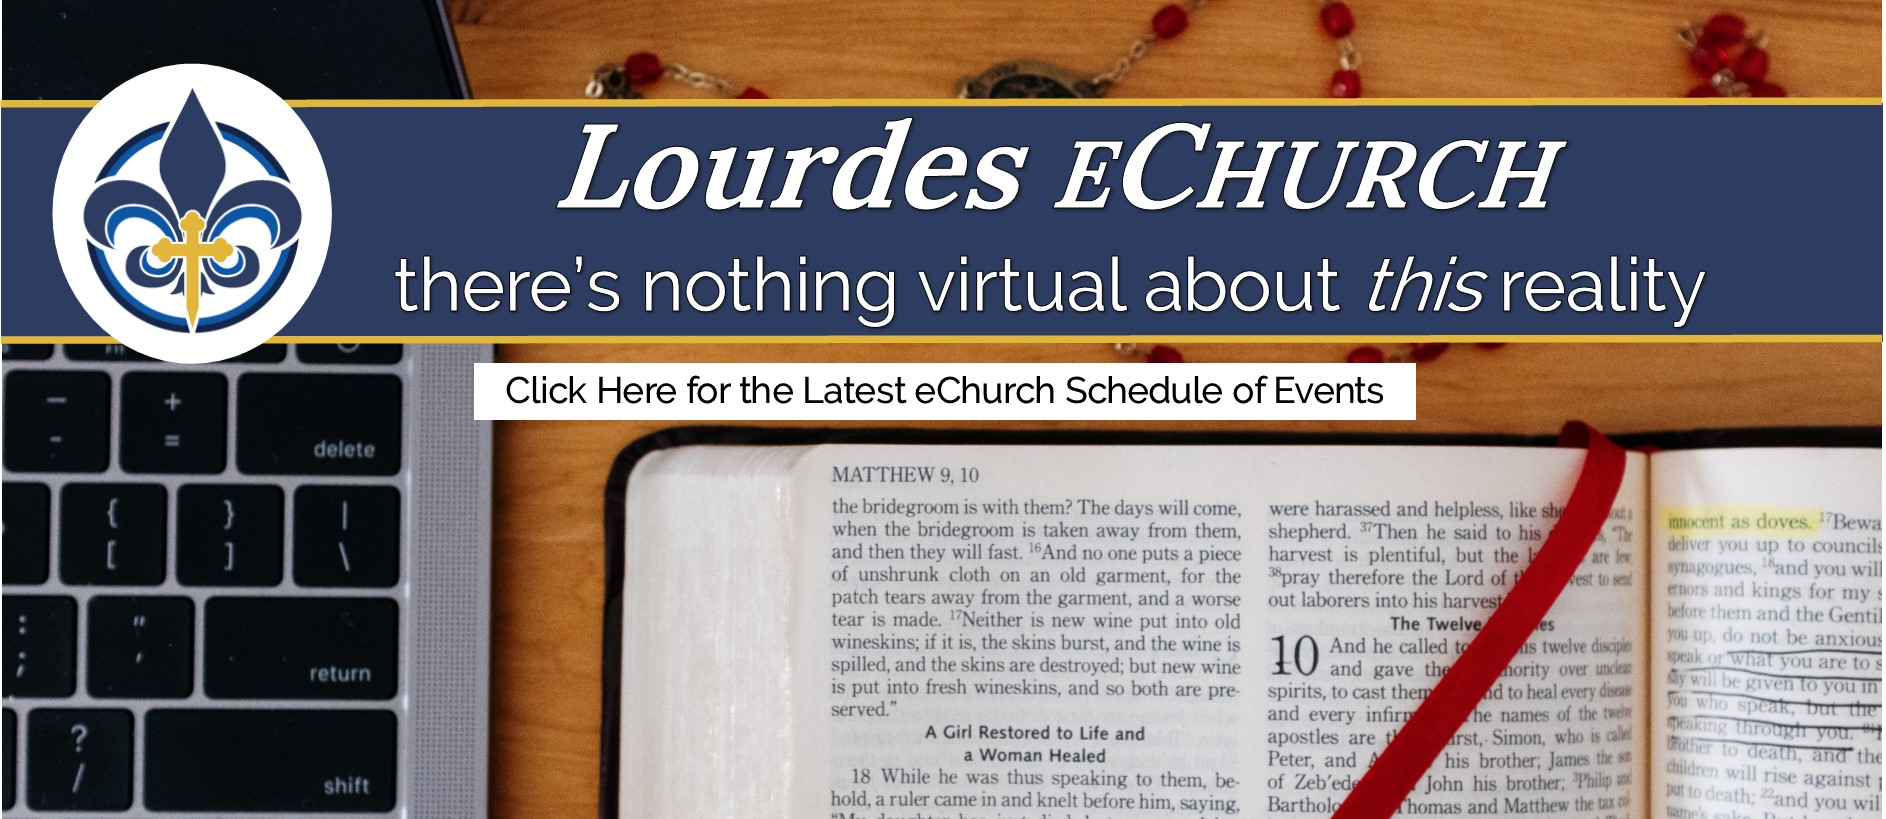 Echurch Whats Happening 2